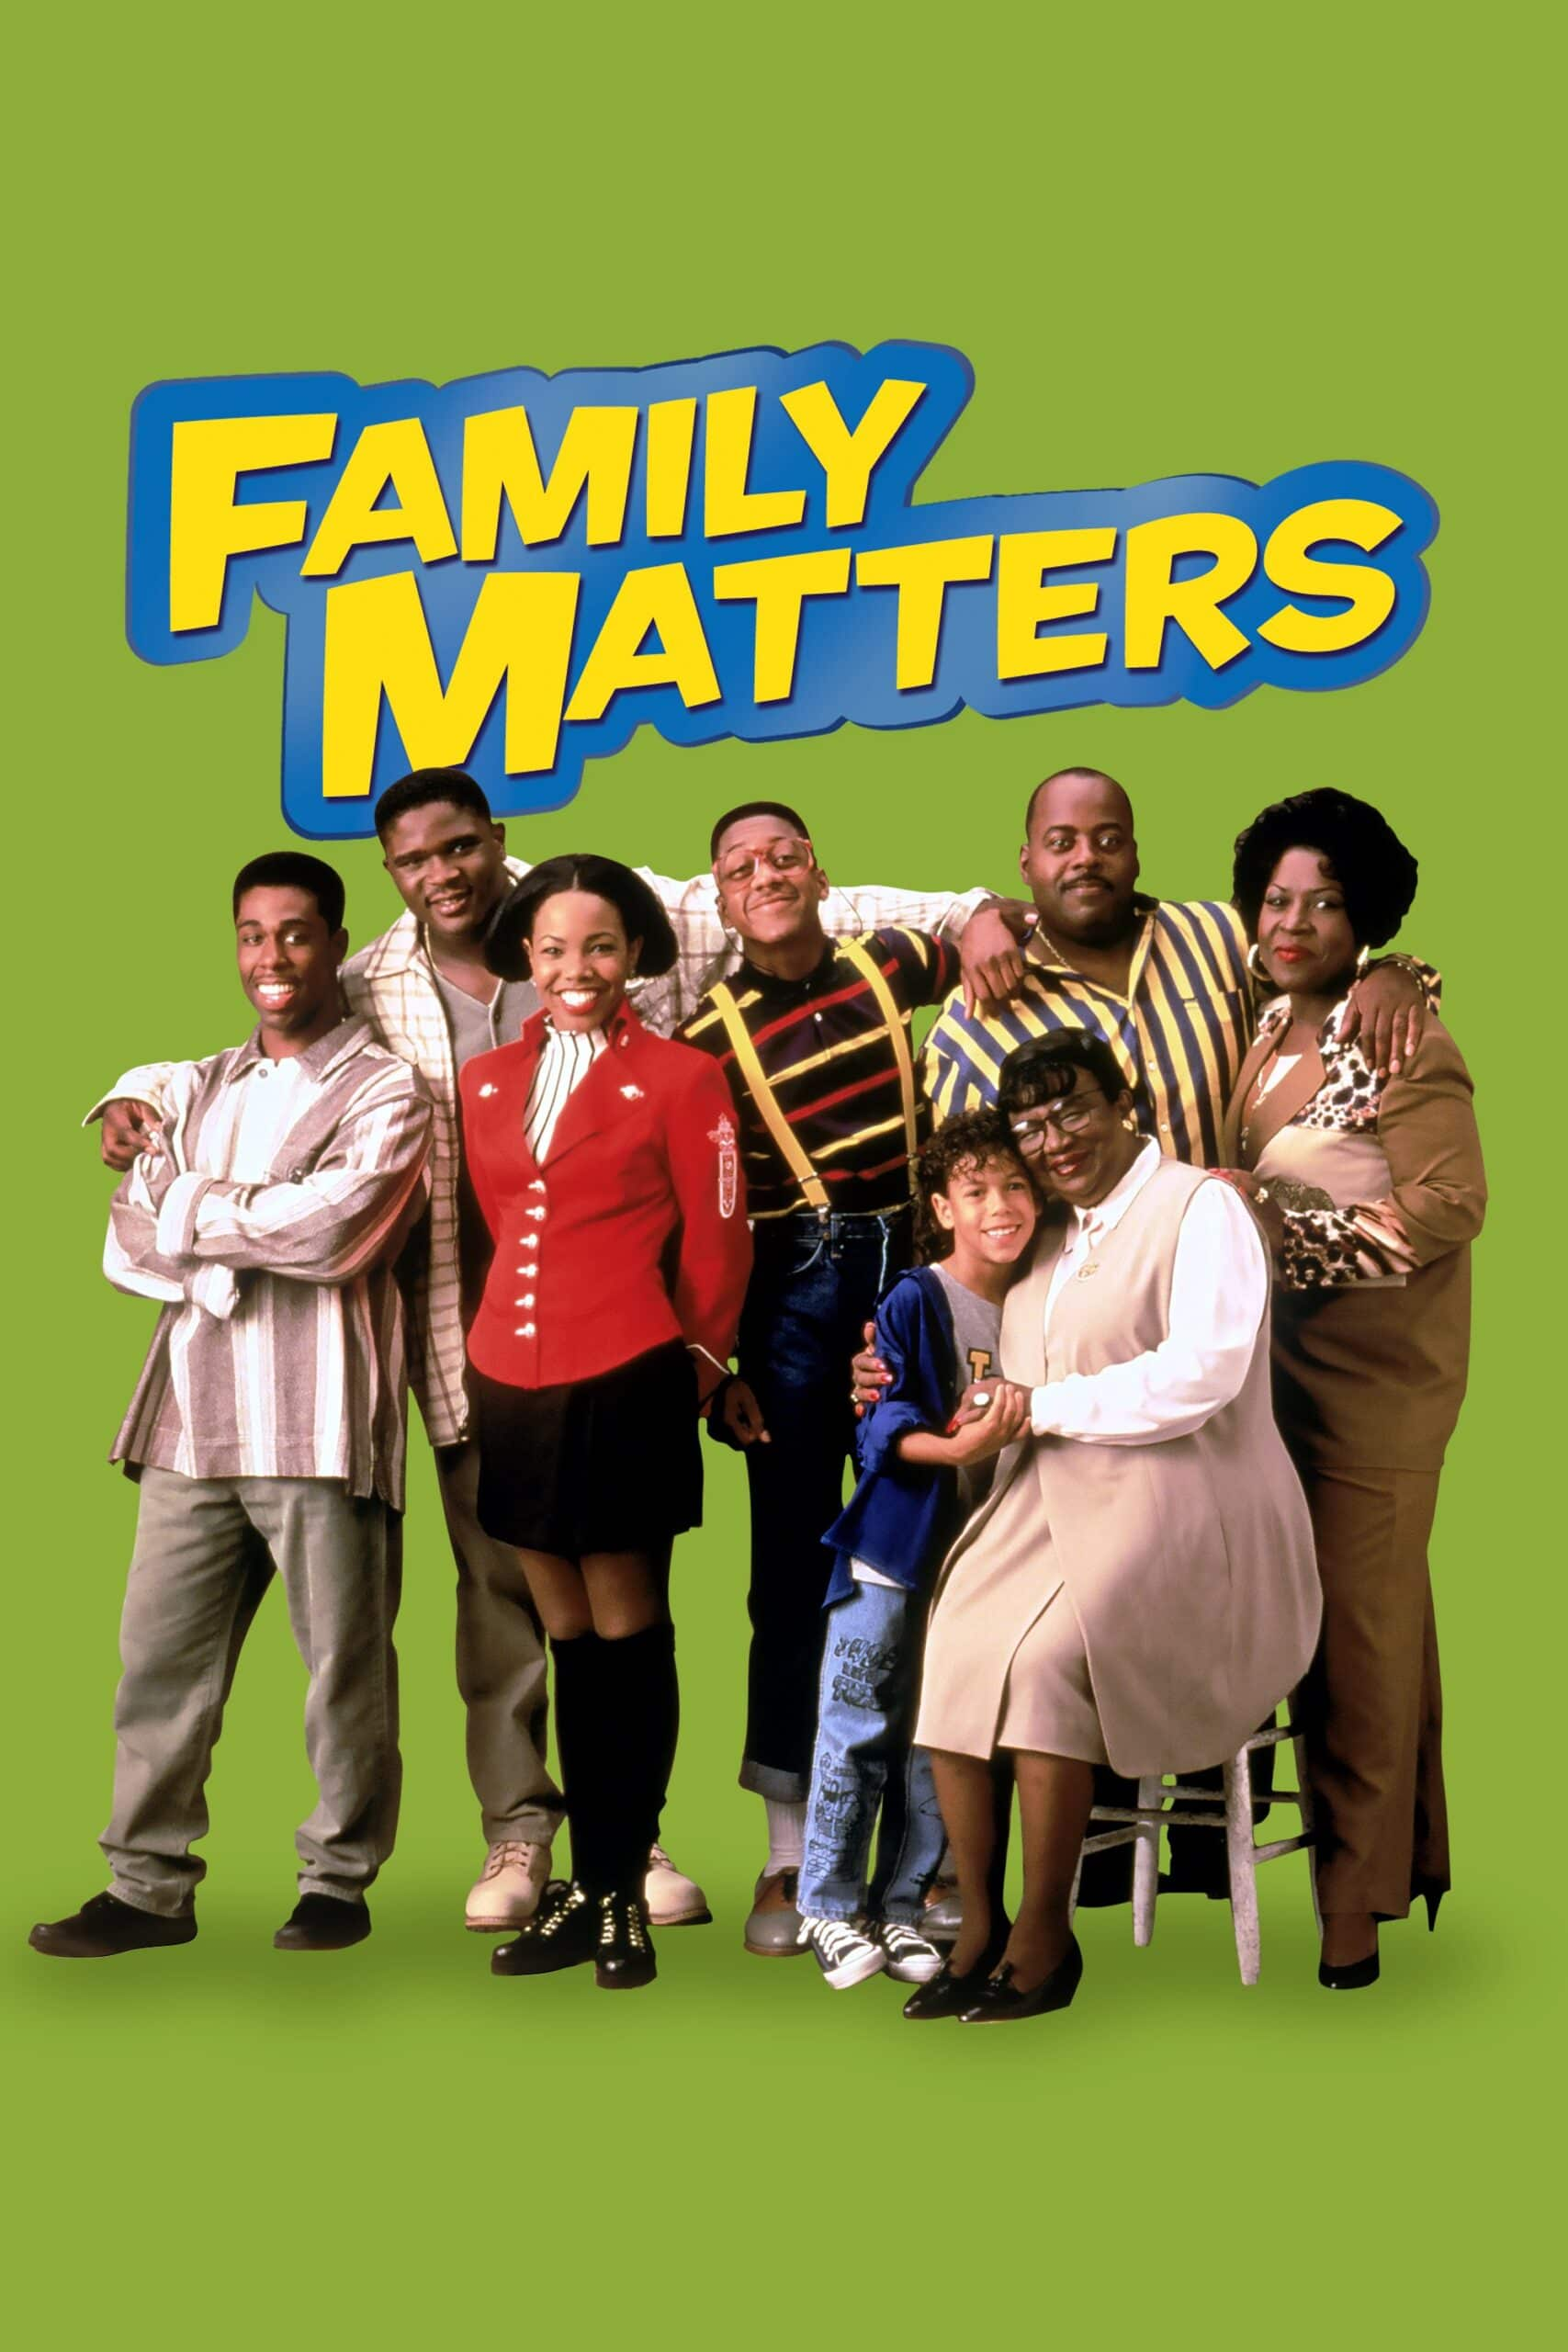 """Family Matters Complete Series Digital Keyart. What matters most? Family, of course! Over its nine hit seasons,Family Matters brings us a hilarious slice of middle-class Americana along with one of TV's wackiest characters, nerdy genius Steve Urkel. The extended Winslow family redefines the word """"togetherness"""" as their home splits at the seams with chaos, confusion, and laughter."""